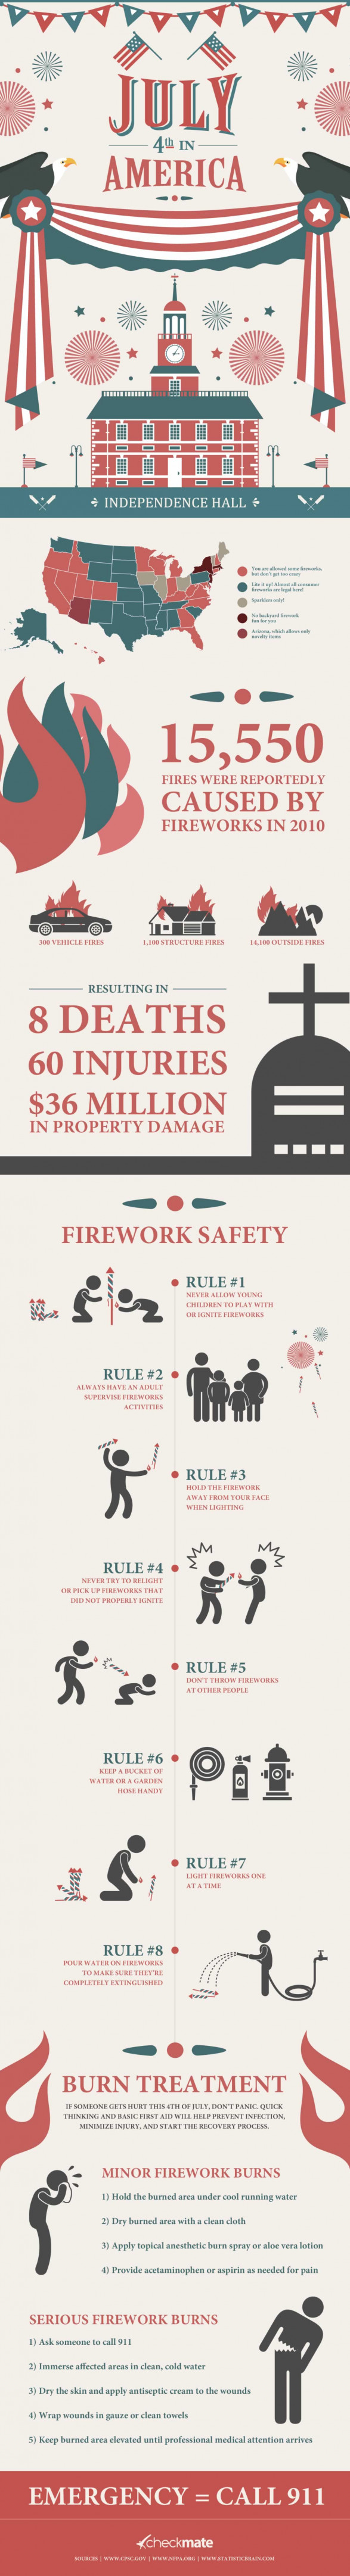 Fireworks 101: 4th of July Safety